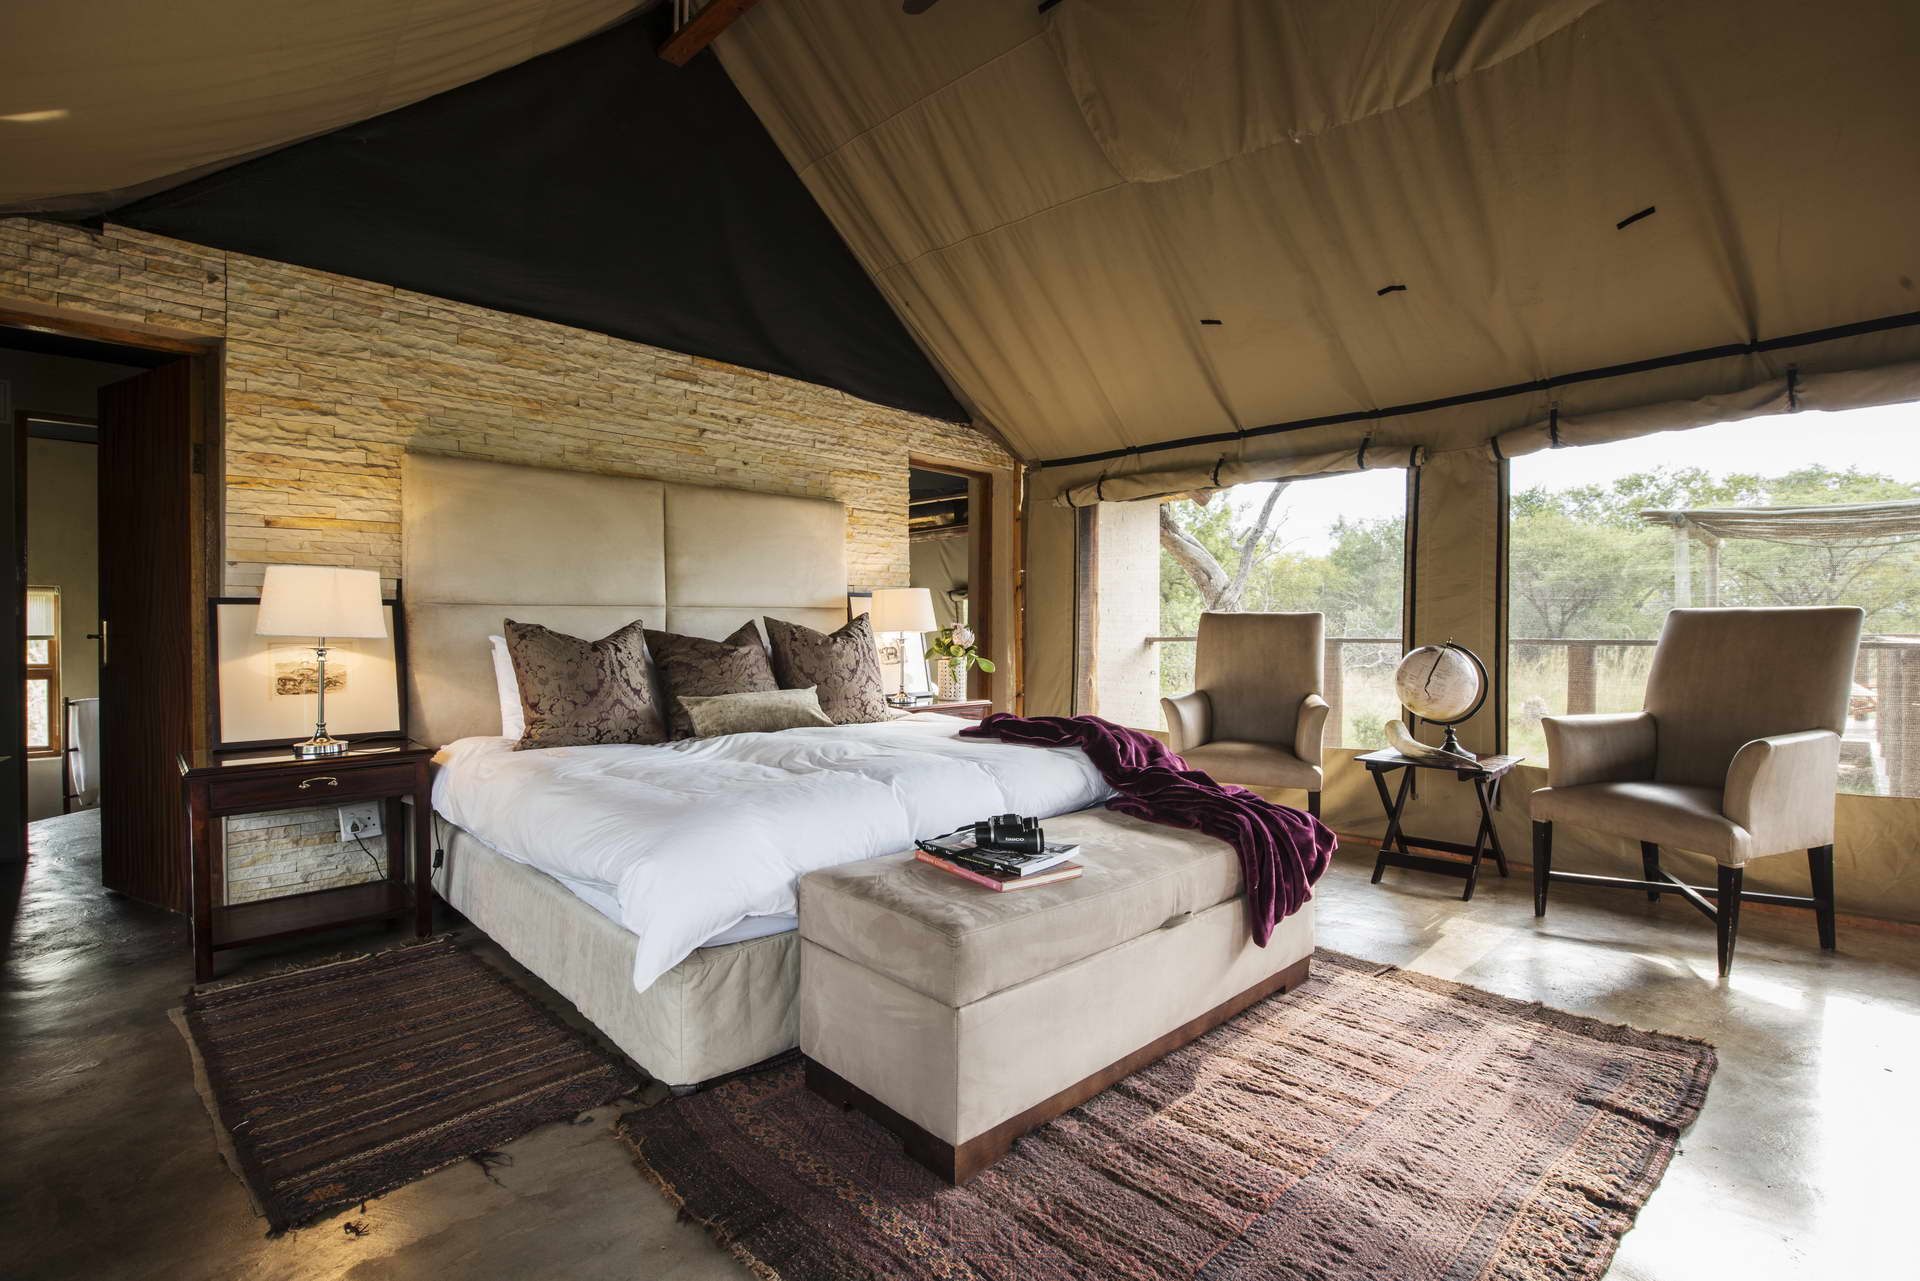 Thandeka Lodge Bela Bela offers luxury tented camp accommodation with spa, resort & game drive facilities in Limpopo's malaria-free Waterberg mountain range